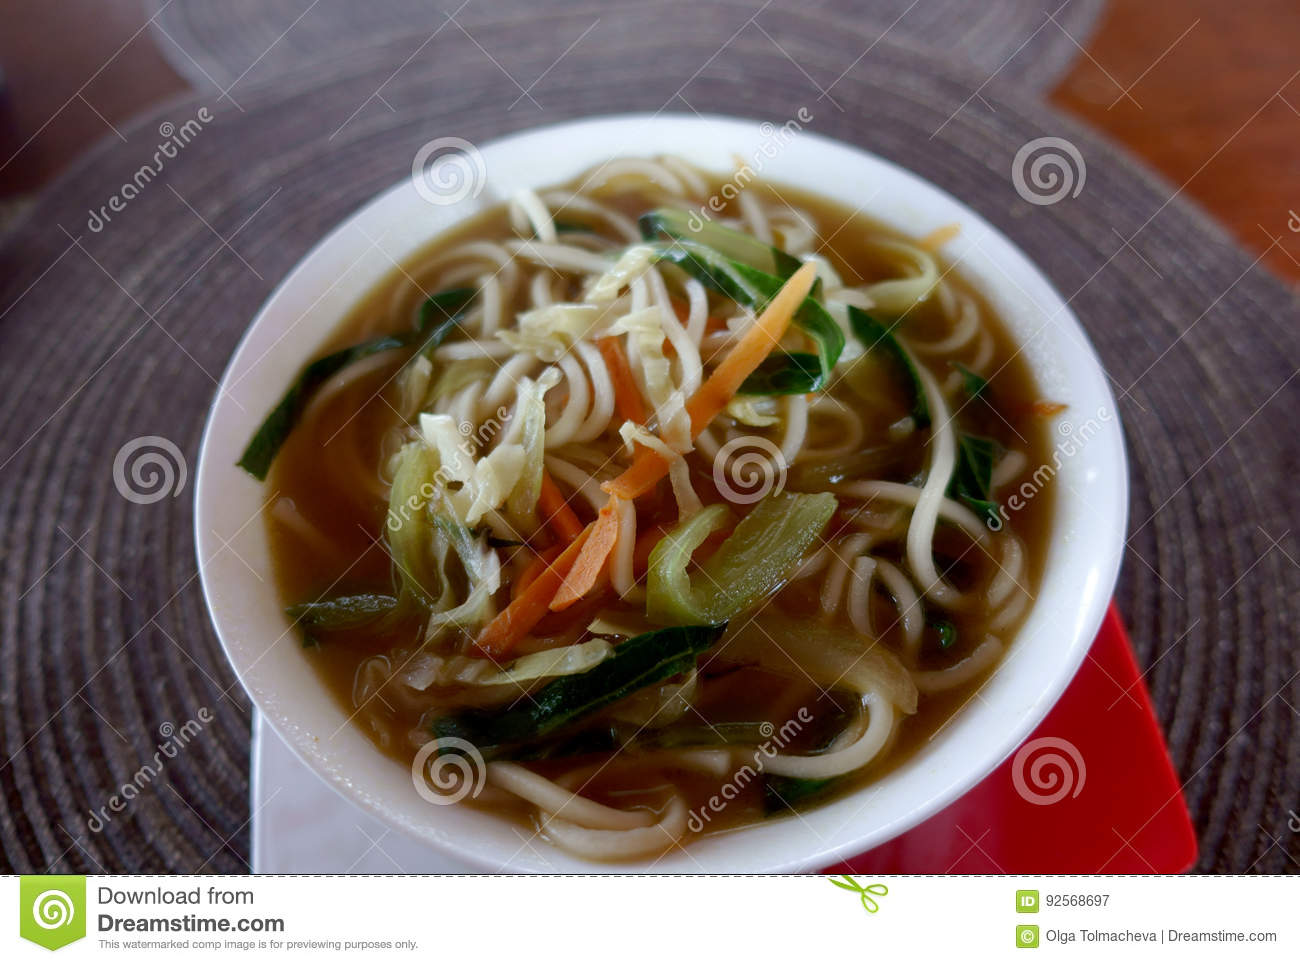 A bowl of soup with noodles and vegetables on a round napkin